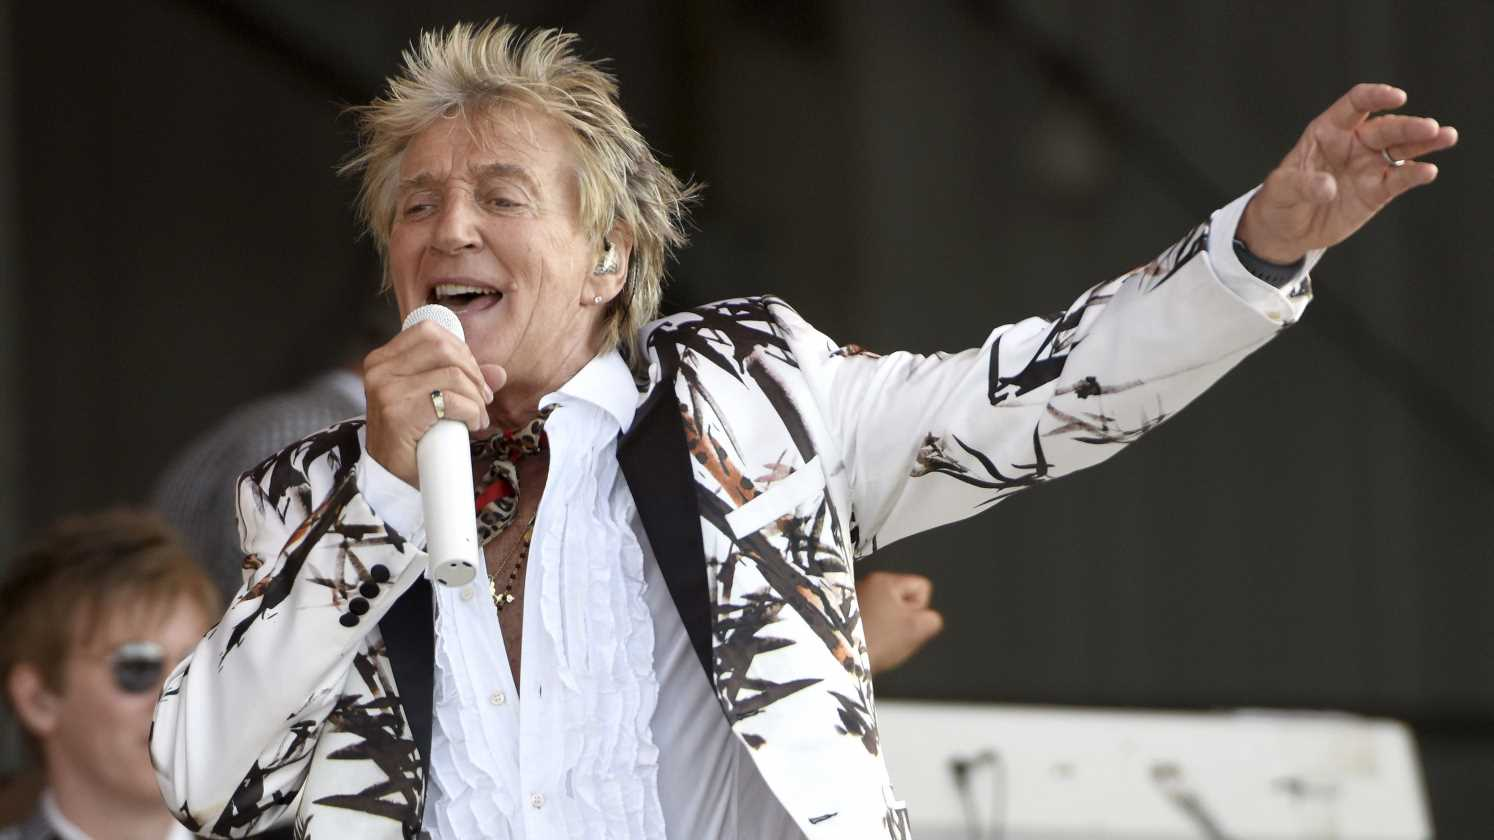 Rod Stewart reunites with four exes for an epic blended family photo